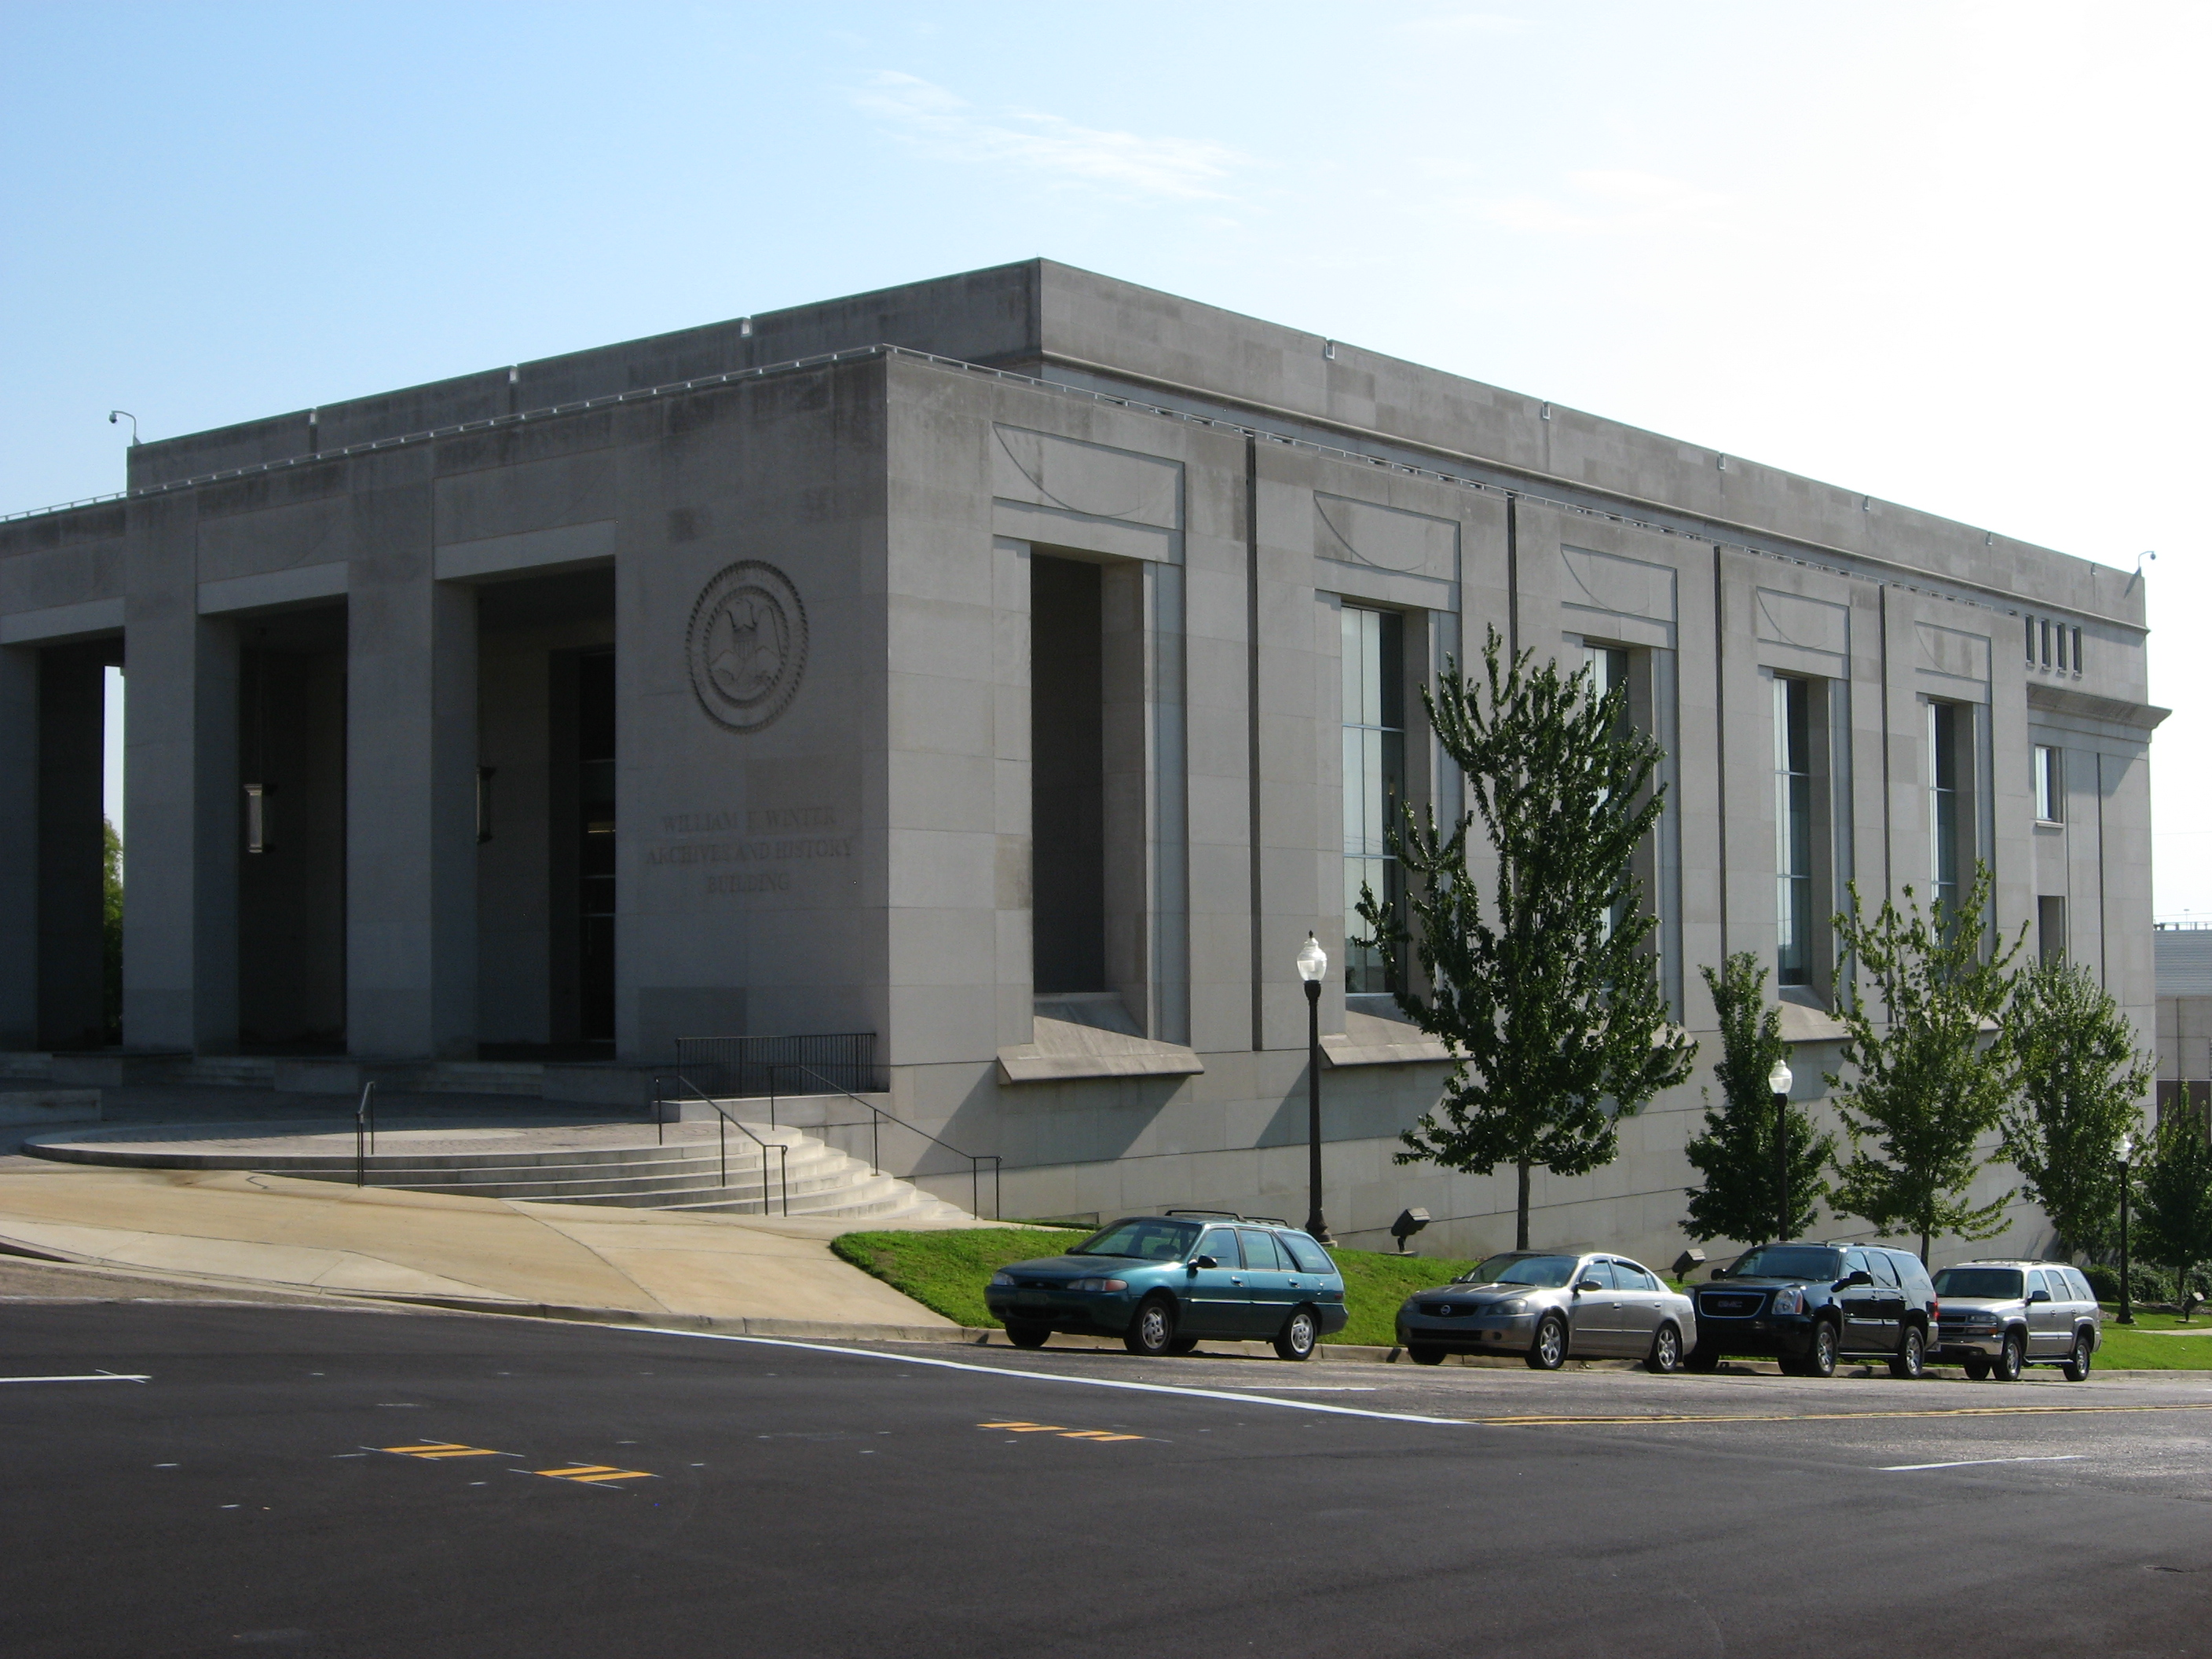 """""""Mississippi Department of Archives and History, Jackson, Mississippi (3932738300)"""" by Ken Lund from Las Vegas, Nevada, USA"""